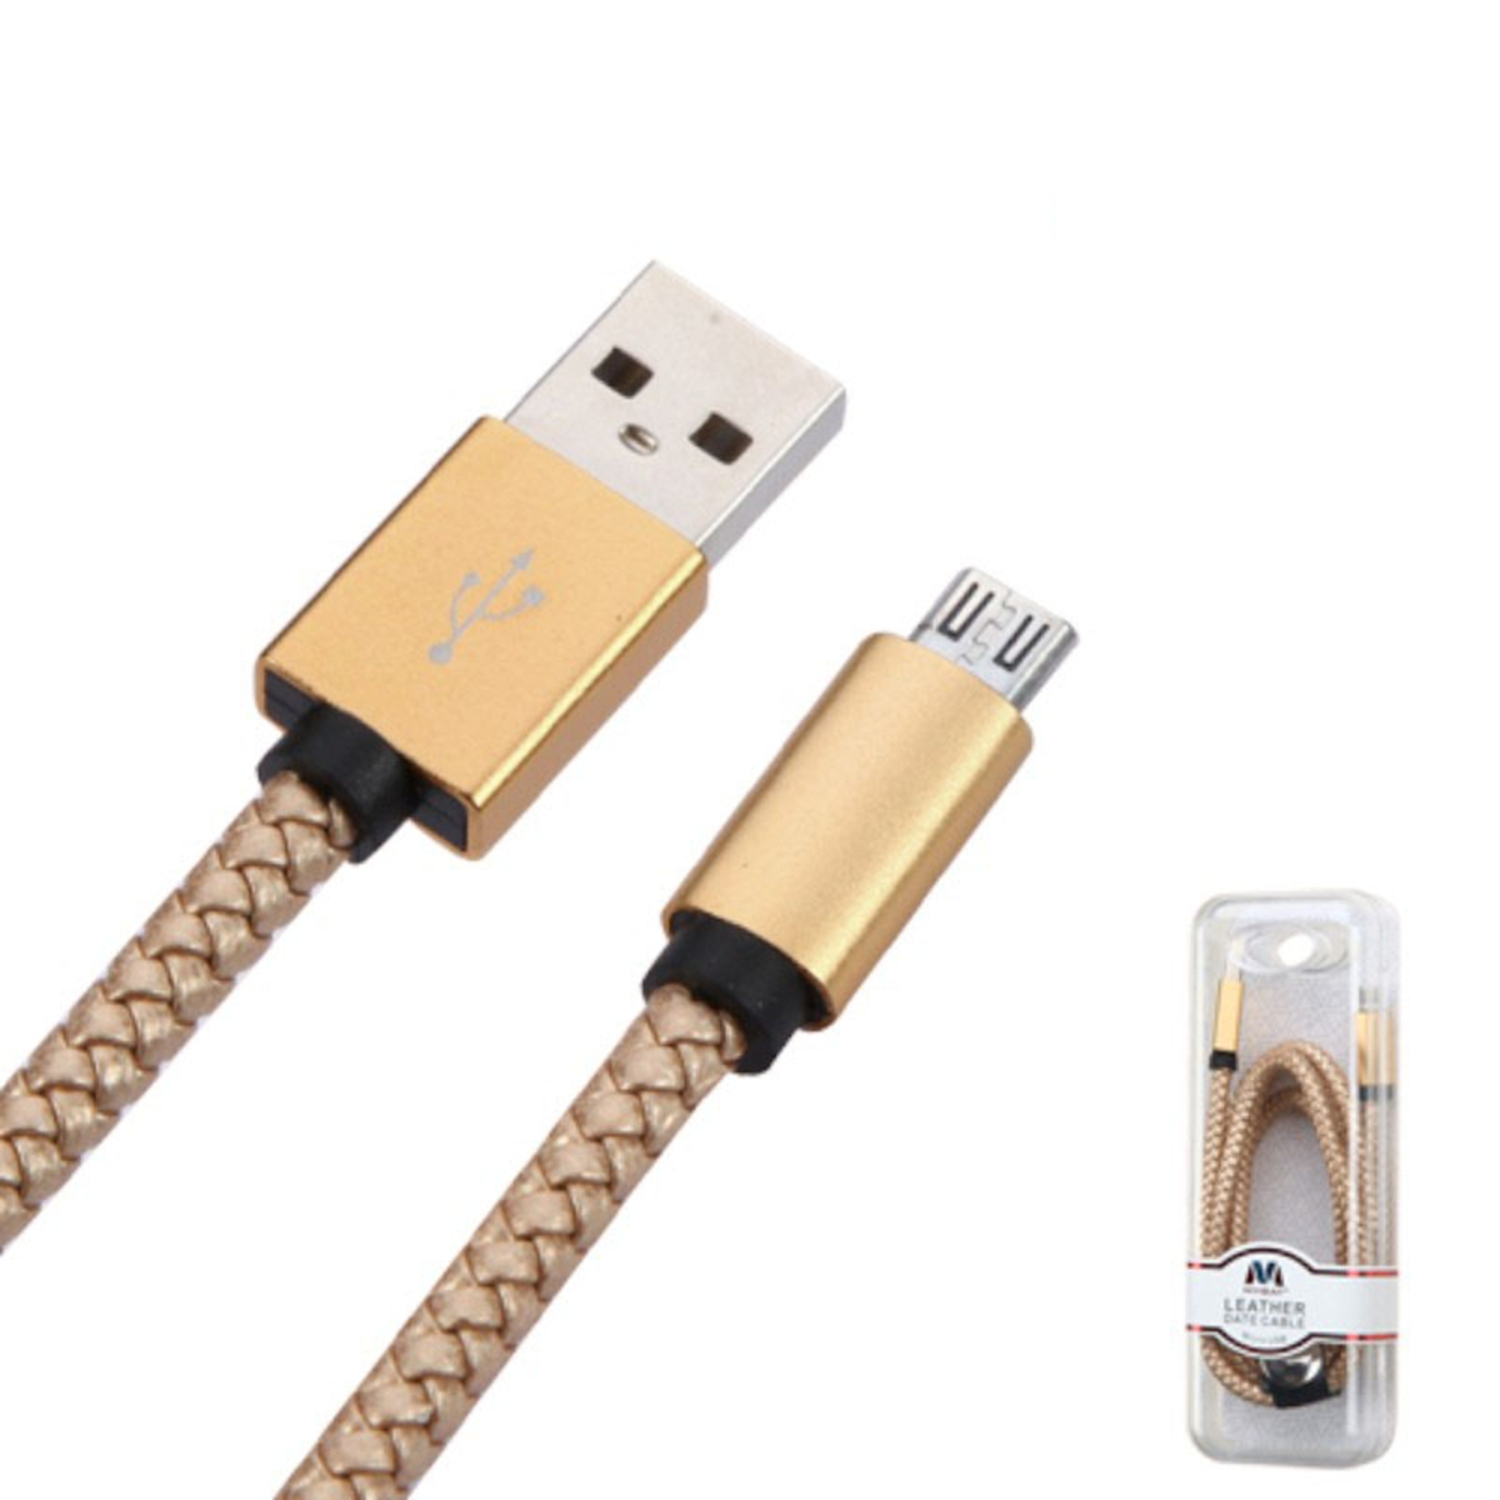 Insten 3.3' Micro USB Braided Leather Data Charging Cable For Samsung Galaxy J7 J5 J1 E5 LG Leon K7 V10 G Stylo 2 - Gold